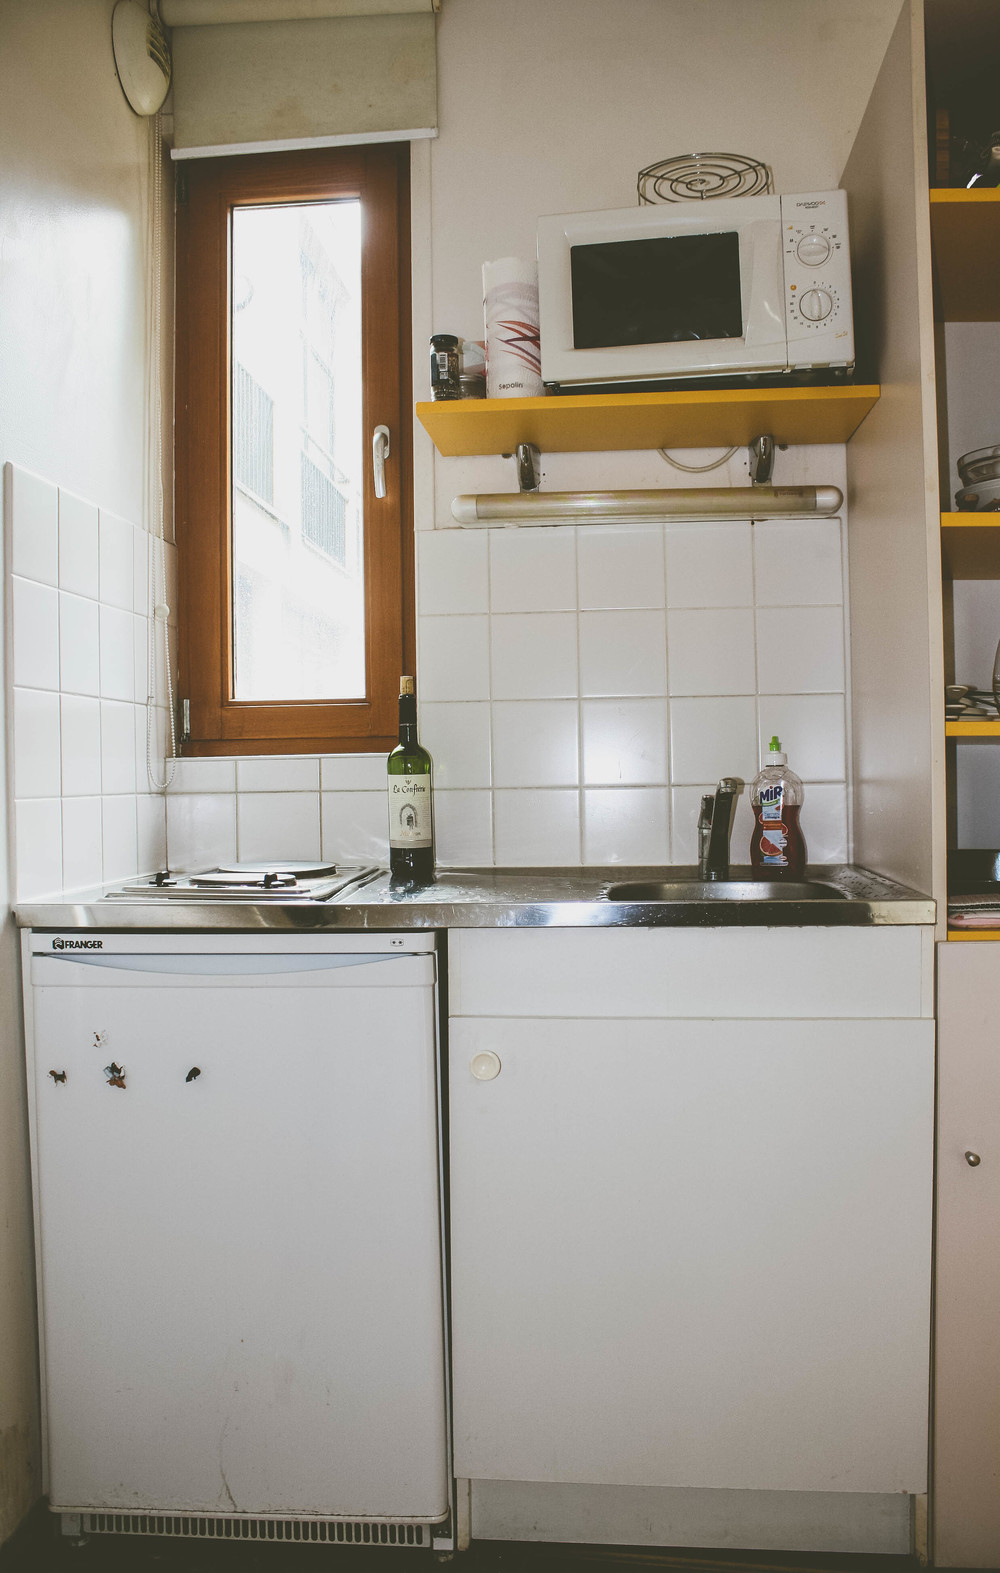 First Apartment in Paris: a kitchen including a tiny little refrigerator and two electric hot plates.